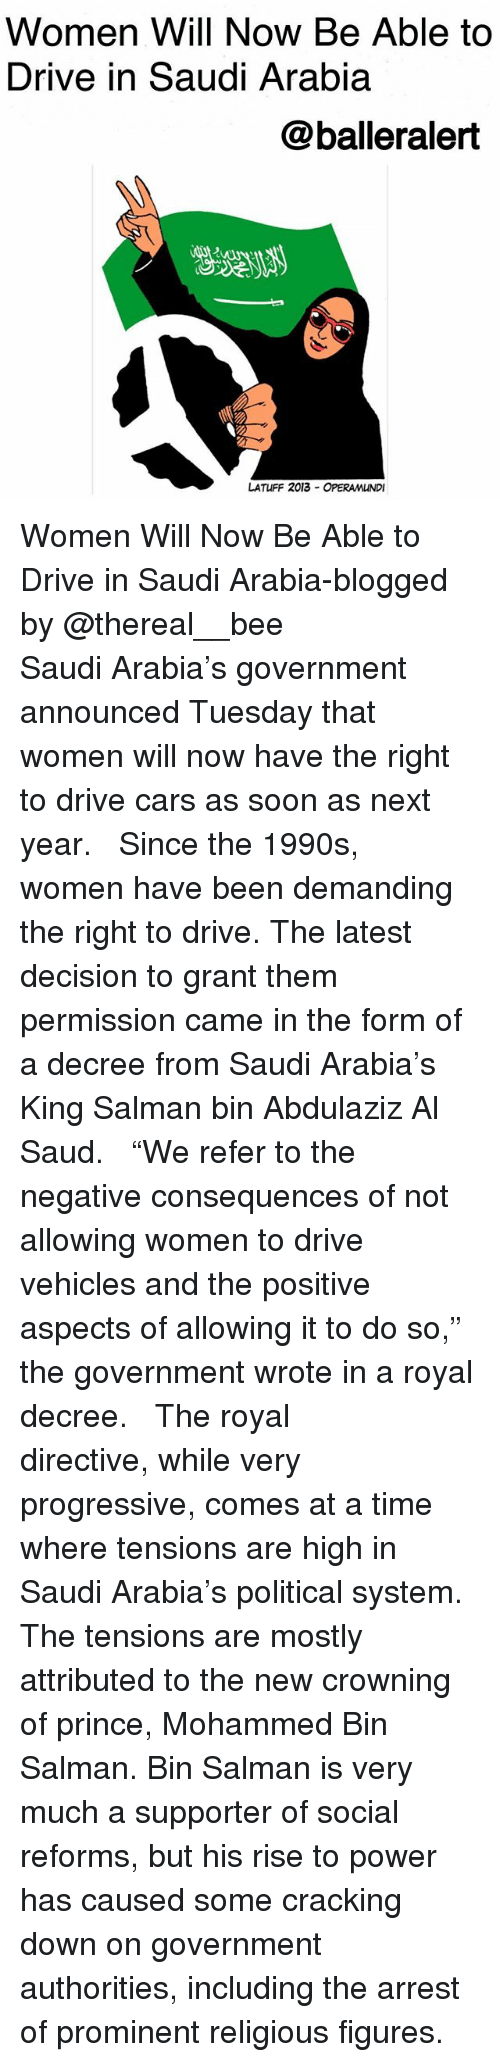 "Cars, Memes, and Prince: Women Will Now Be Able to  Drive in Saudi Arabia  @balleralert  じ2  LATUFF 2013 OPERAMUNDI Women Will Now Be Able to Drive in Saudi Arabia-blogged by @thereal__bee ⠀⠀⠀⠀⠀⠀⠀⠀⠀ ⠀⠀ Saudi Arabia's government announced Tuesday that women will now have the right to drive cars as soon as next year. ⠀⠀⠀⠀⠀⠀⠀⠀⠀ ⠀⠀ Since the 1990s, women have been demanding the right to drive. The latest decision to grant them permission came in the form of a decree from Saudi Arabia's King Salman bin Abdulaziz Al Saud. ⠀⠀⠀⠀⠀⠀⠀⠀⠀ ⠀⠀ ""We refer to the negative consequences of not allowing women to drive vehicles and the positive aspects of allowing it to do so,"" the government wrote in a royal decree. ⠀⠀⠀⠀⠀⠀⠀⠀⠀ ⠀⠀ The royal directive, while very progressive, comes at a time where tensions are high in Saudi Arabia's political system. The tensions are mostly attributed to the new crowning of prince, Mohammed Bin Salman. Bin Salman is very much a supporter of social reforms, but his rise to power has caused some cracking down on government authorities, including the arrest of prominent religious figures."